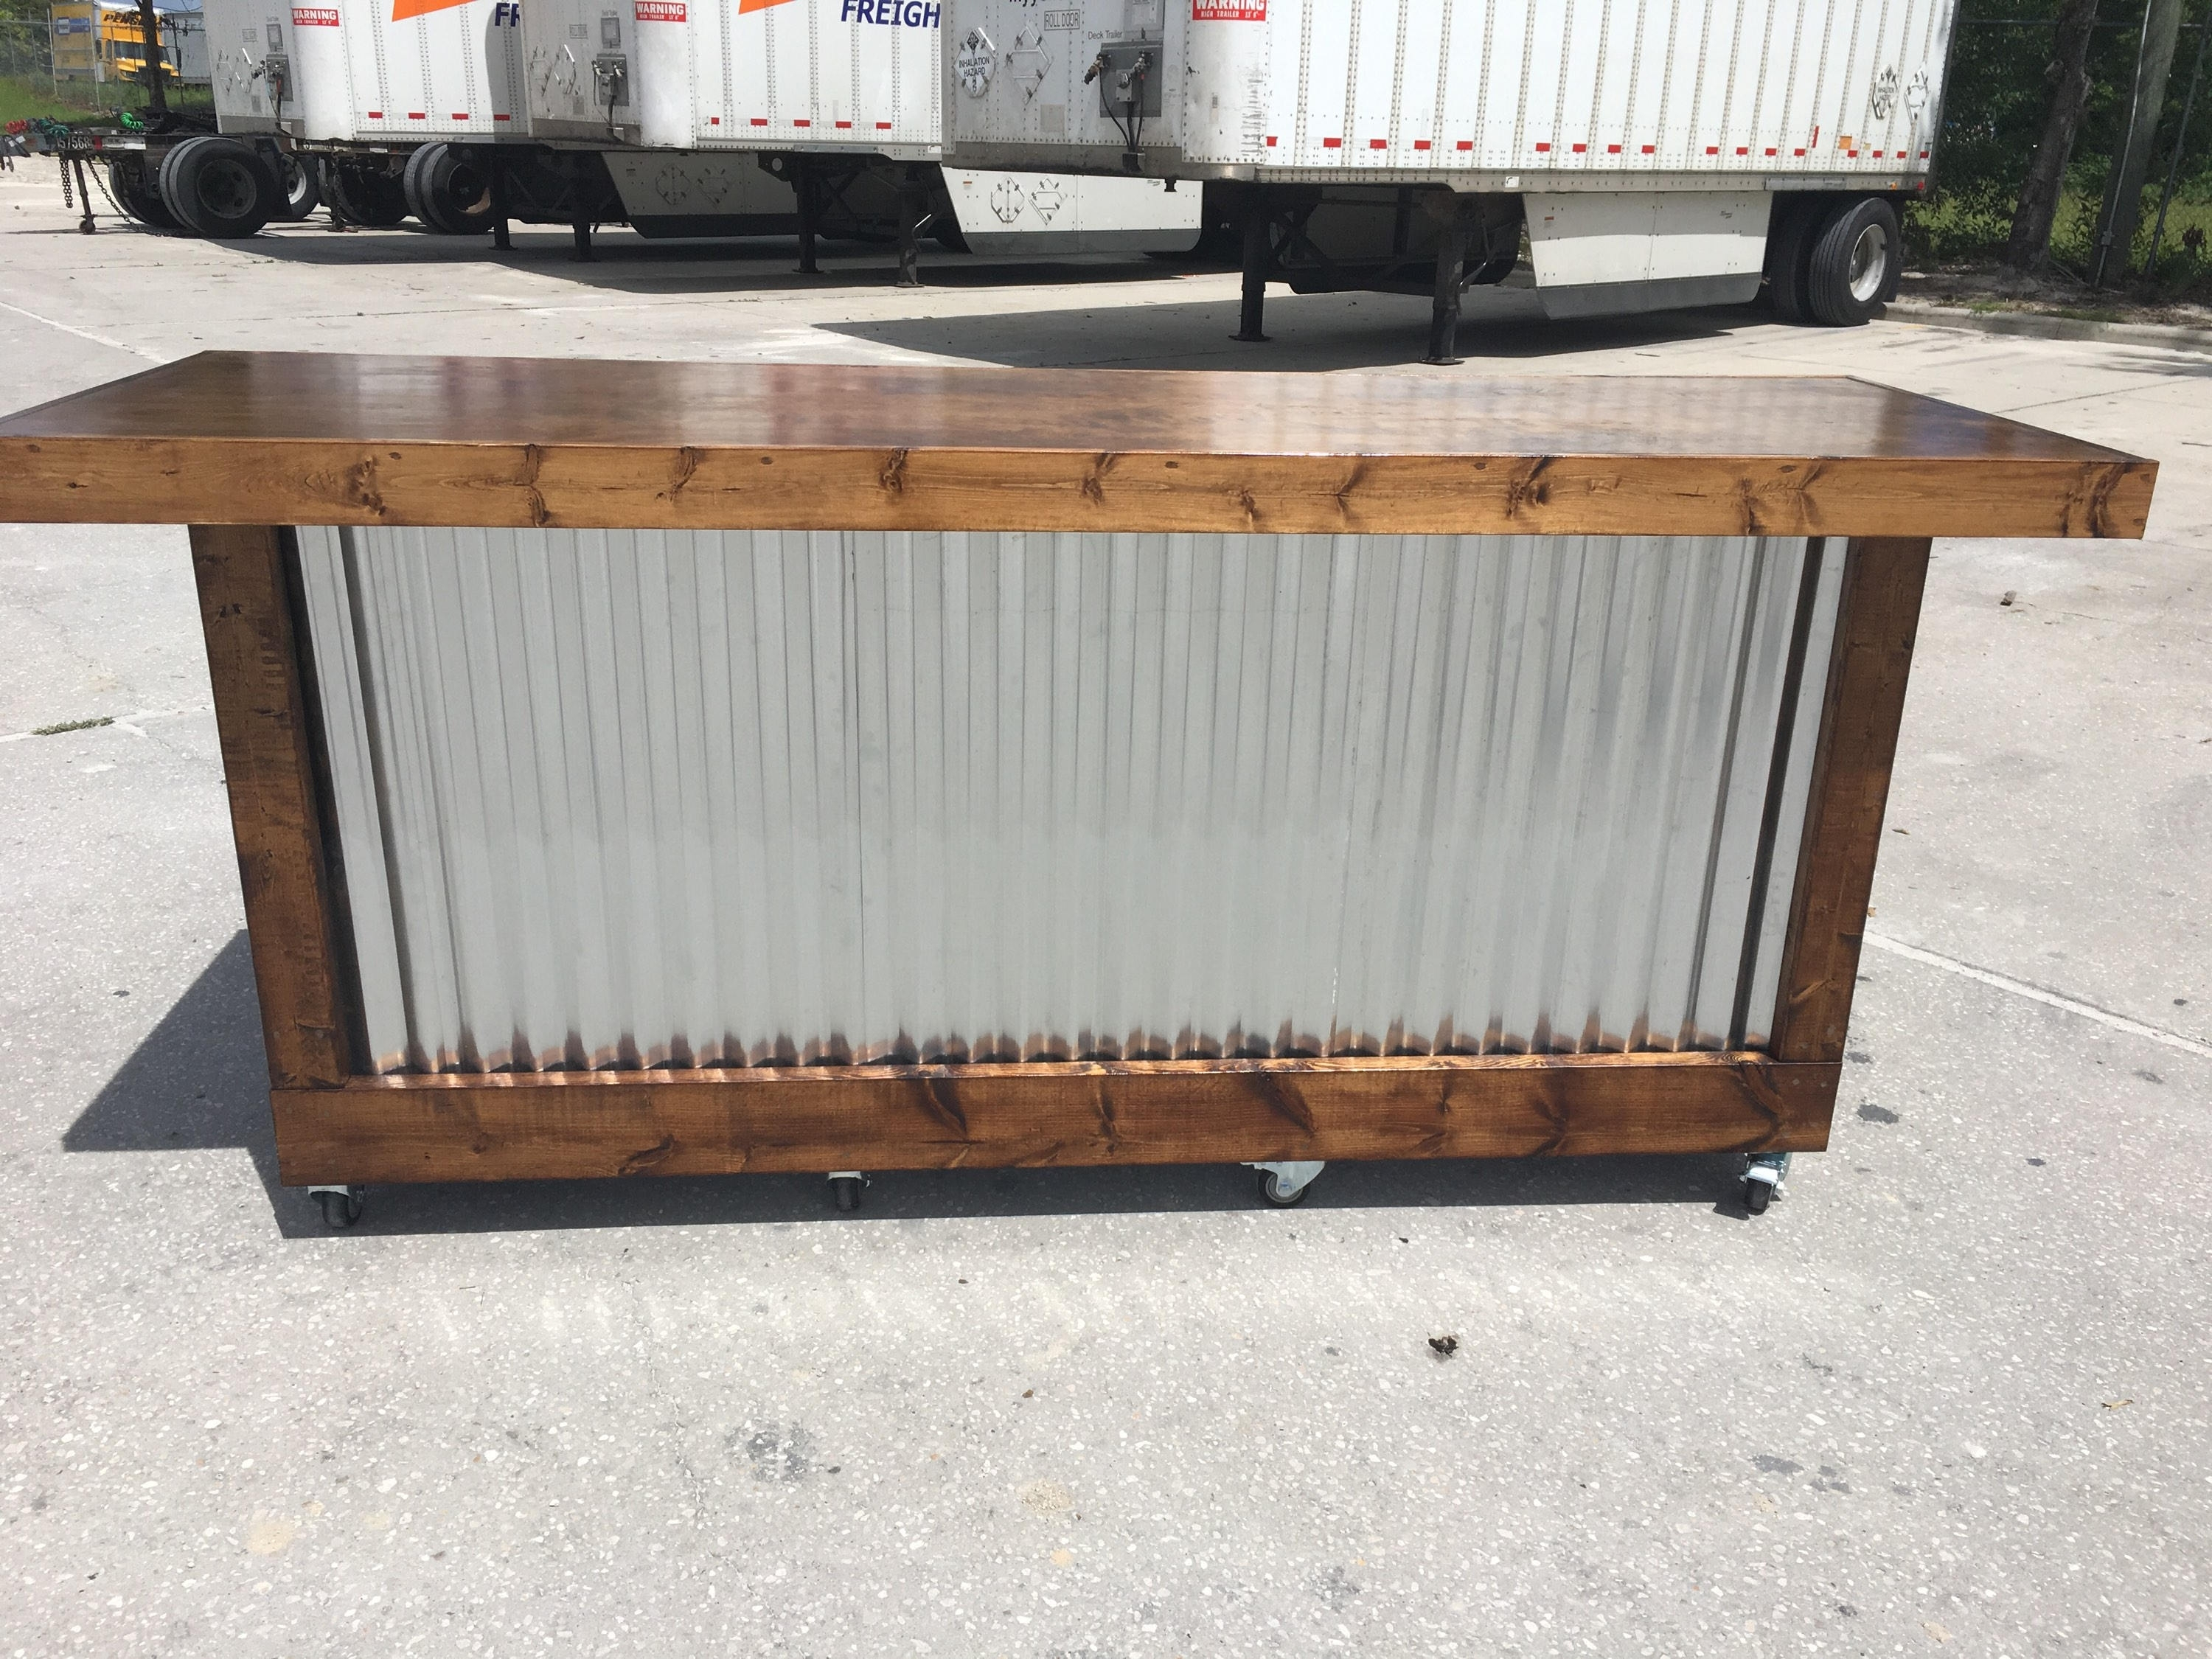 The Provincial 8 Foot Mobile Corrugated Metal Bar Sales | Etsy inside Corrugated Metal Sideboards (Image 28 of 30)